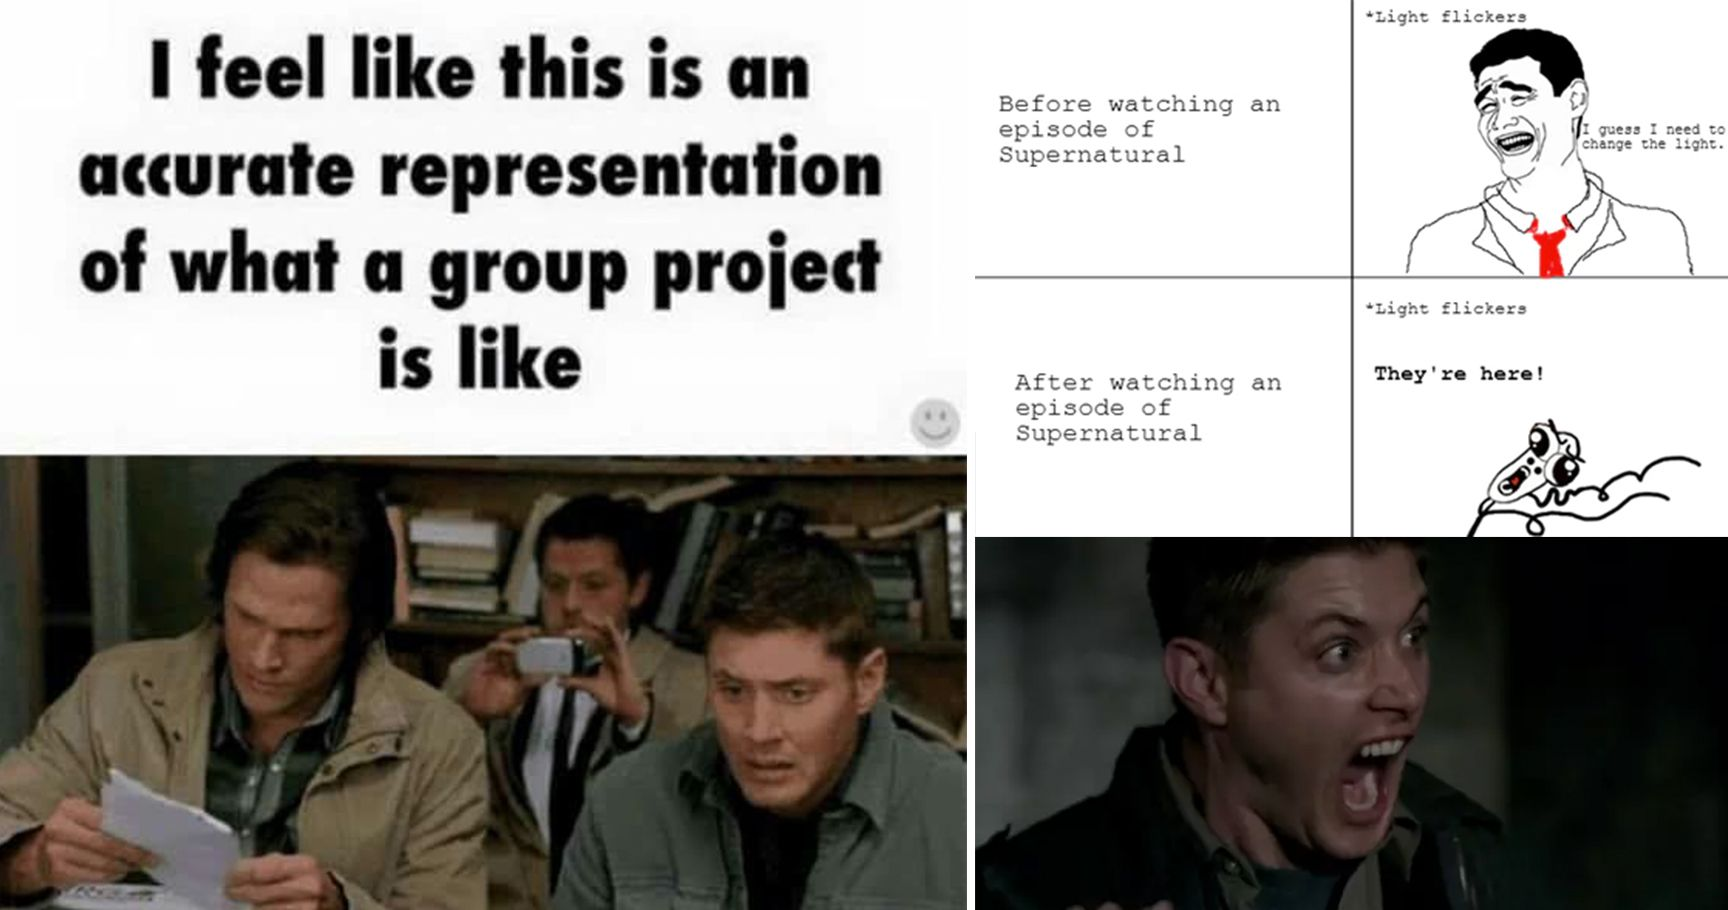 supernatural 15 'supernatural' memes that will make any fan rotf with laughter